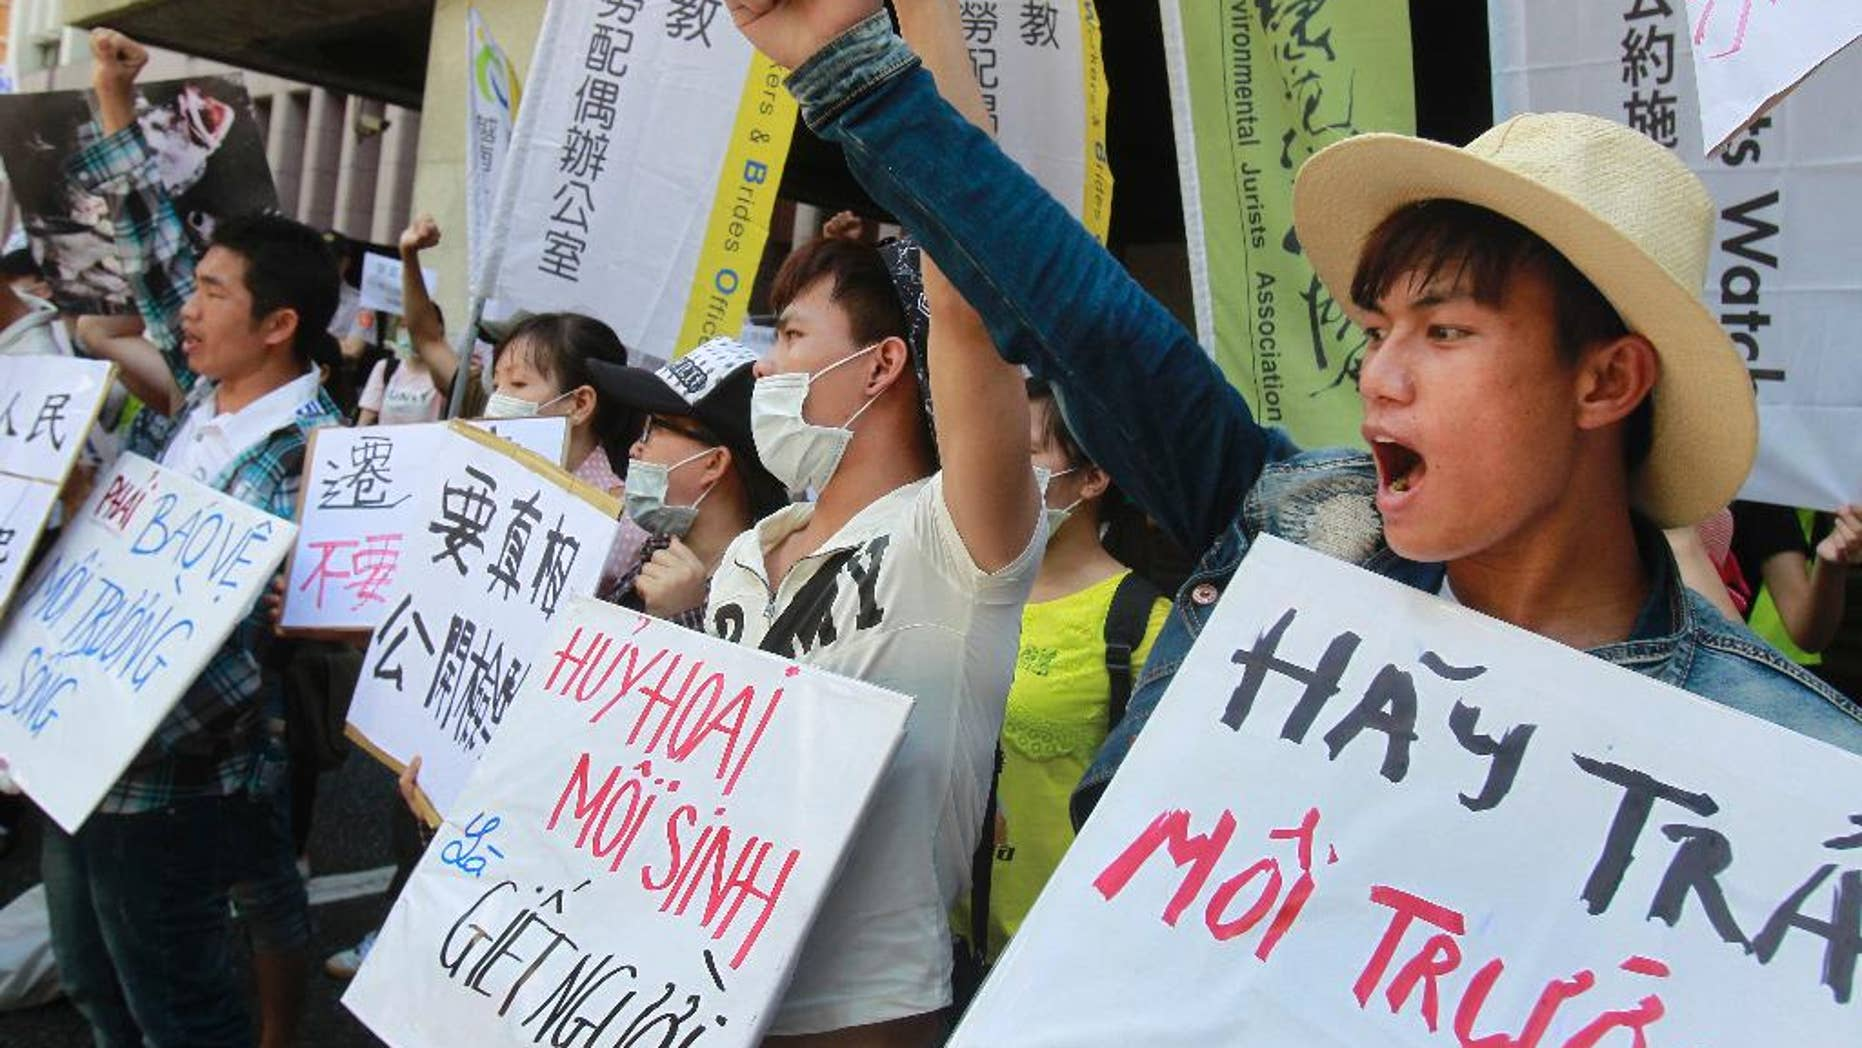 "FILE - In this Aug. 10, 2016 file photo, Vietnamese activists shout slogans and hold placards reading ''Destroying the environment is killing, ""left, and ''Return clean seawater to us'' during a protest to urge Formosa Plastics Group to take responsibilities for the cleanup in Vietnam, in Taipei, Taiwan.    Hundreds of Vietnamese fishermen have filed claims seeking compensation from a Taiwanese steel company that acknowledged its toxic chemicals caused a massive fish kill, a local priest helping the fishermen said Tuesday, Sept. 27, 2016.  (AP Photo/Chiang Ying-ying, File)"